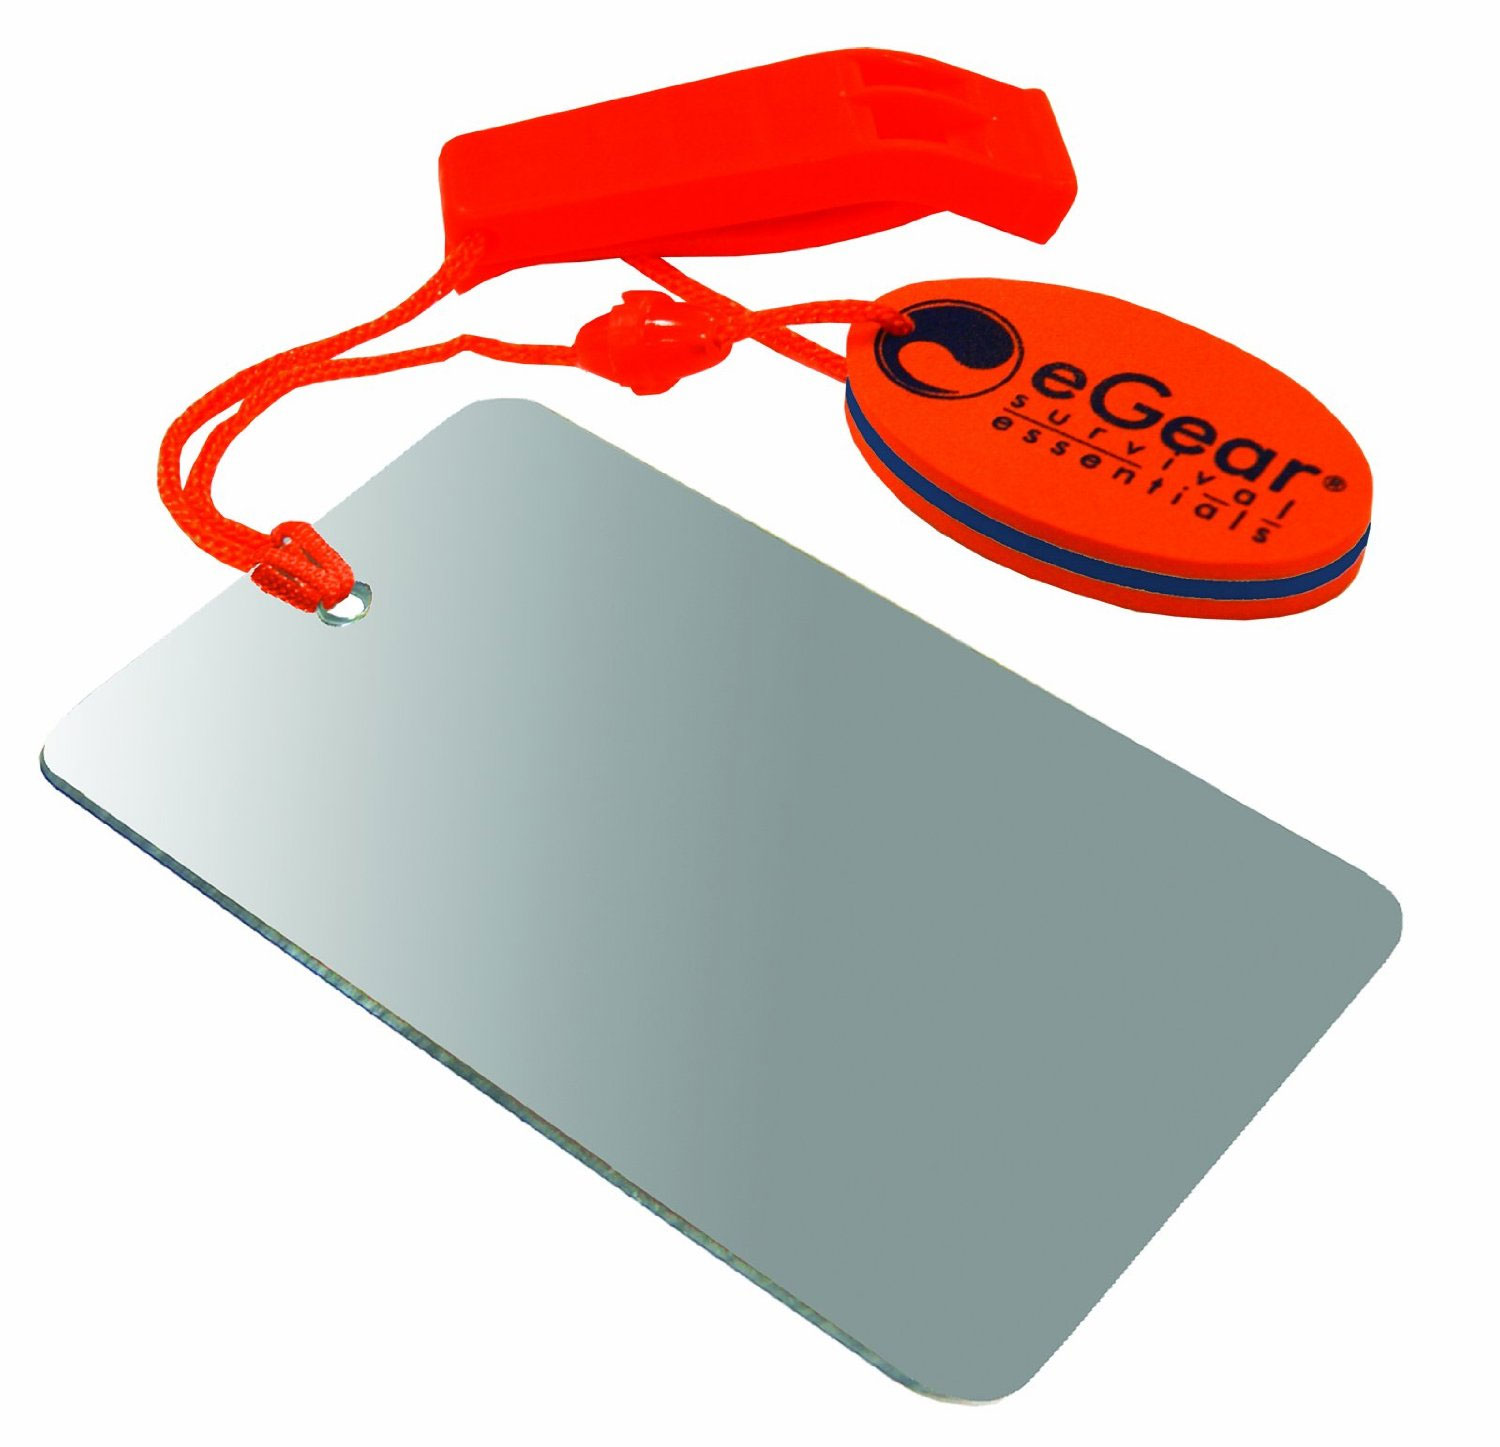 eGear Mirror and Whistle with Float Combo, Orange